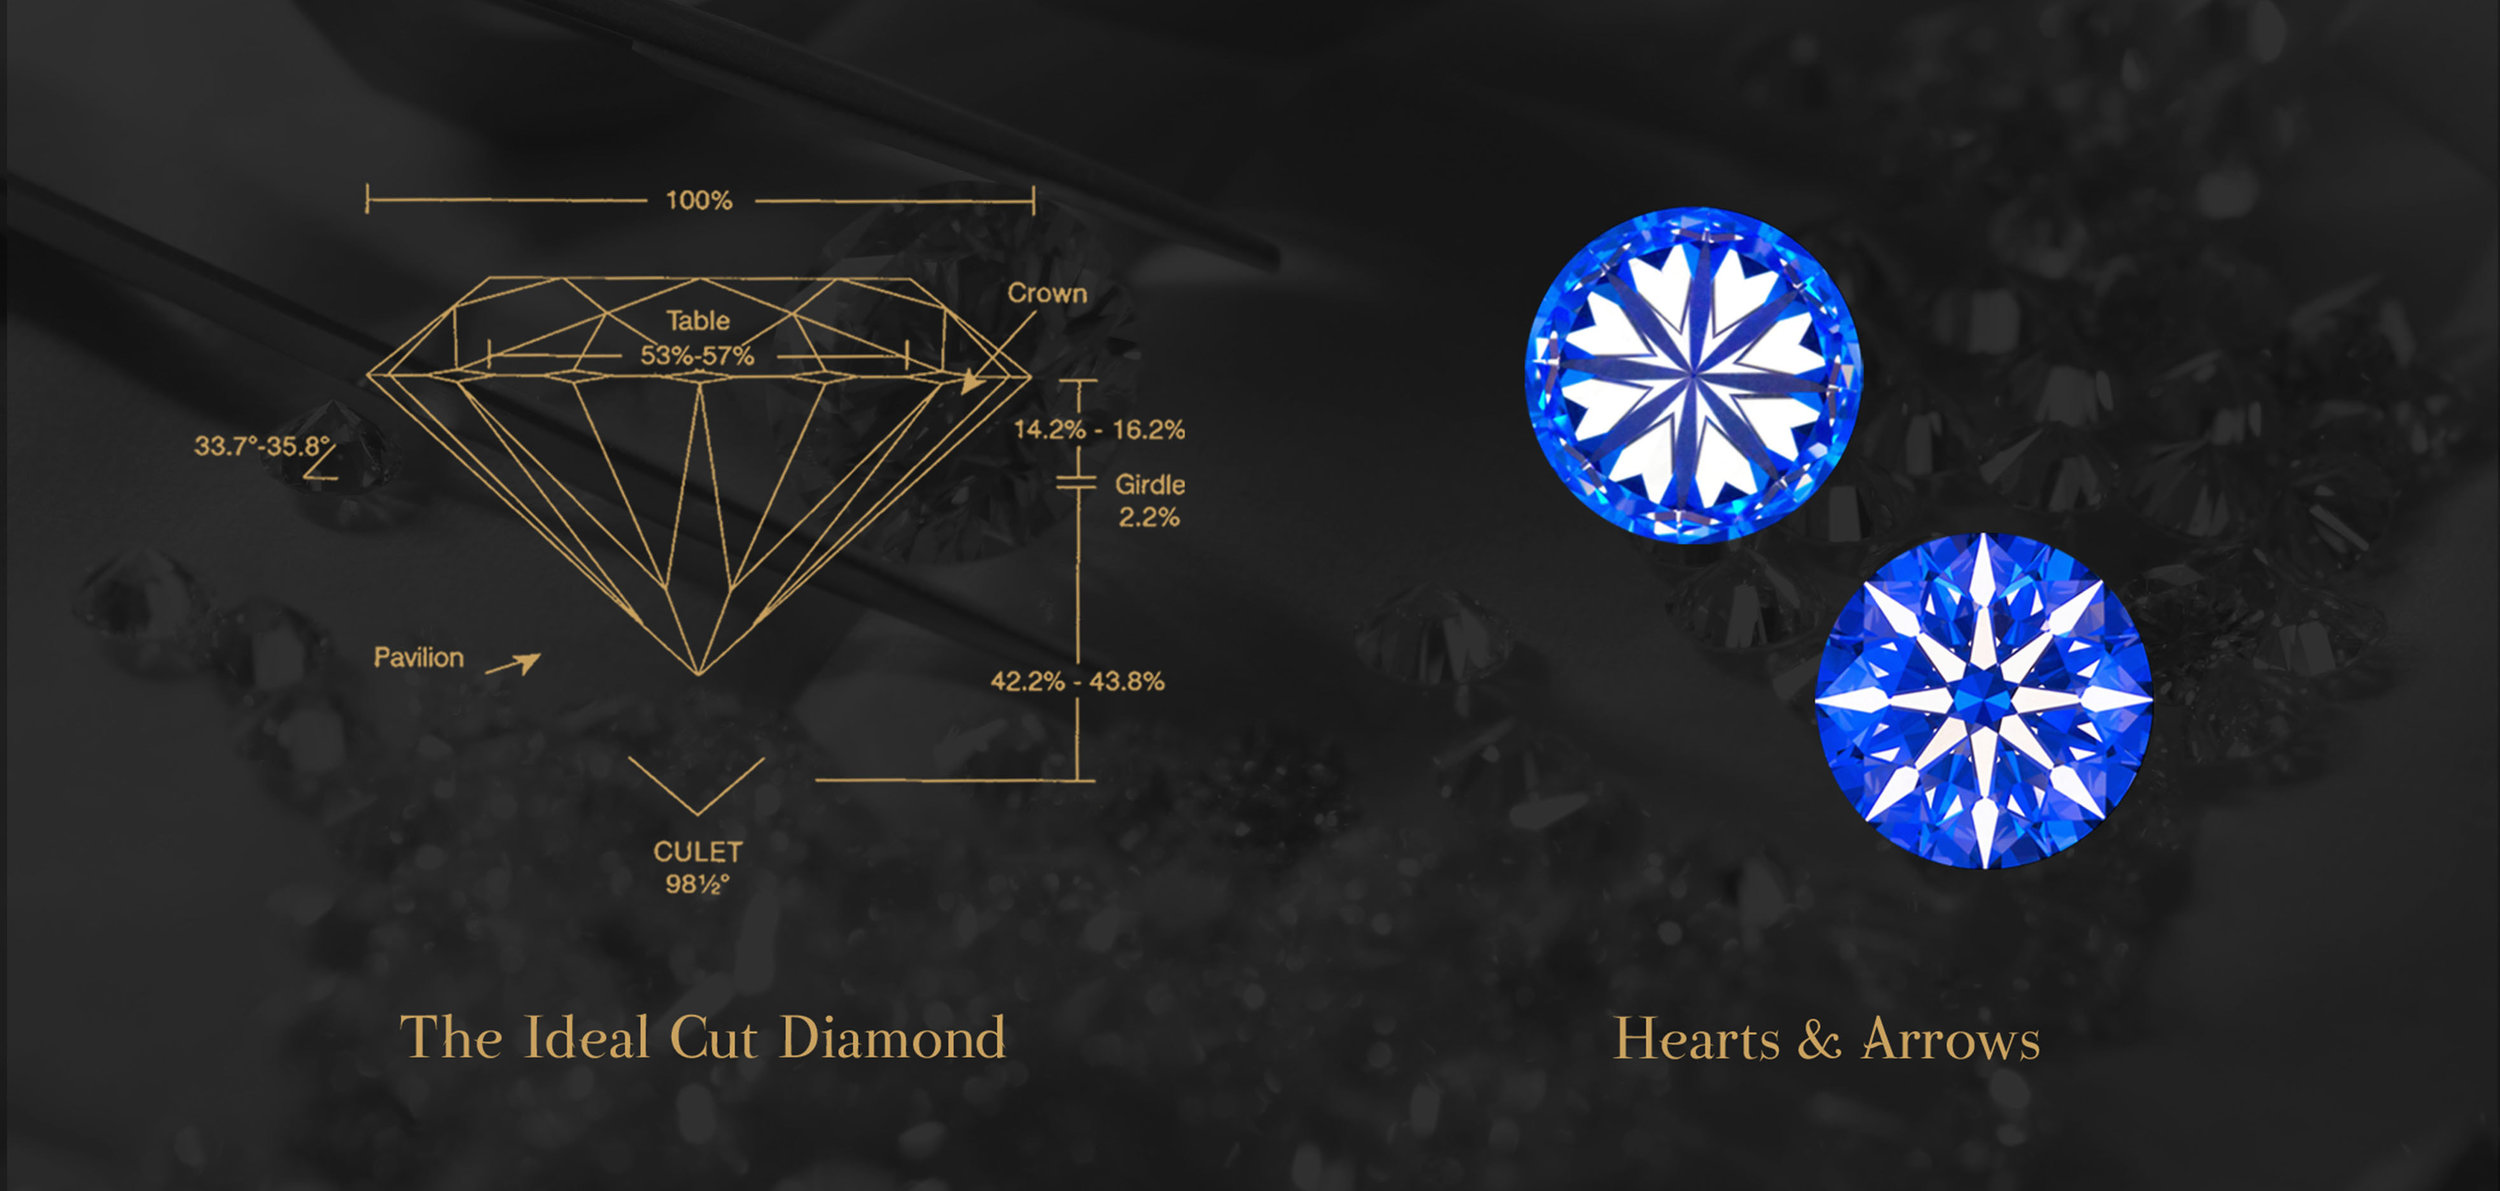 hearts and arrows diamond craftsmanship